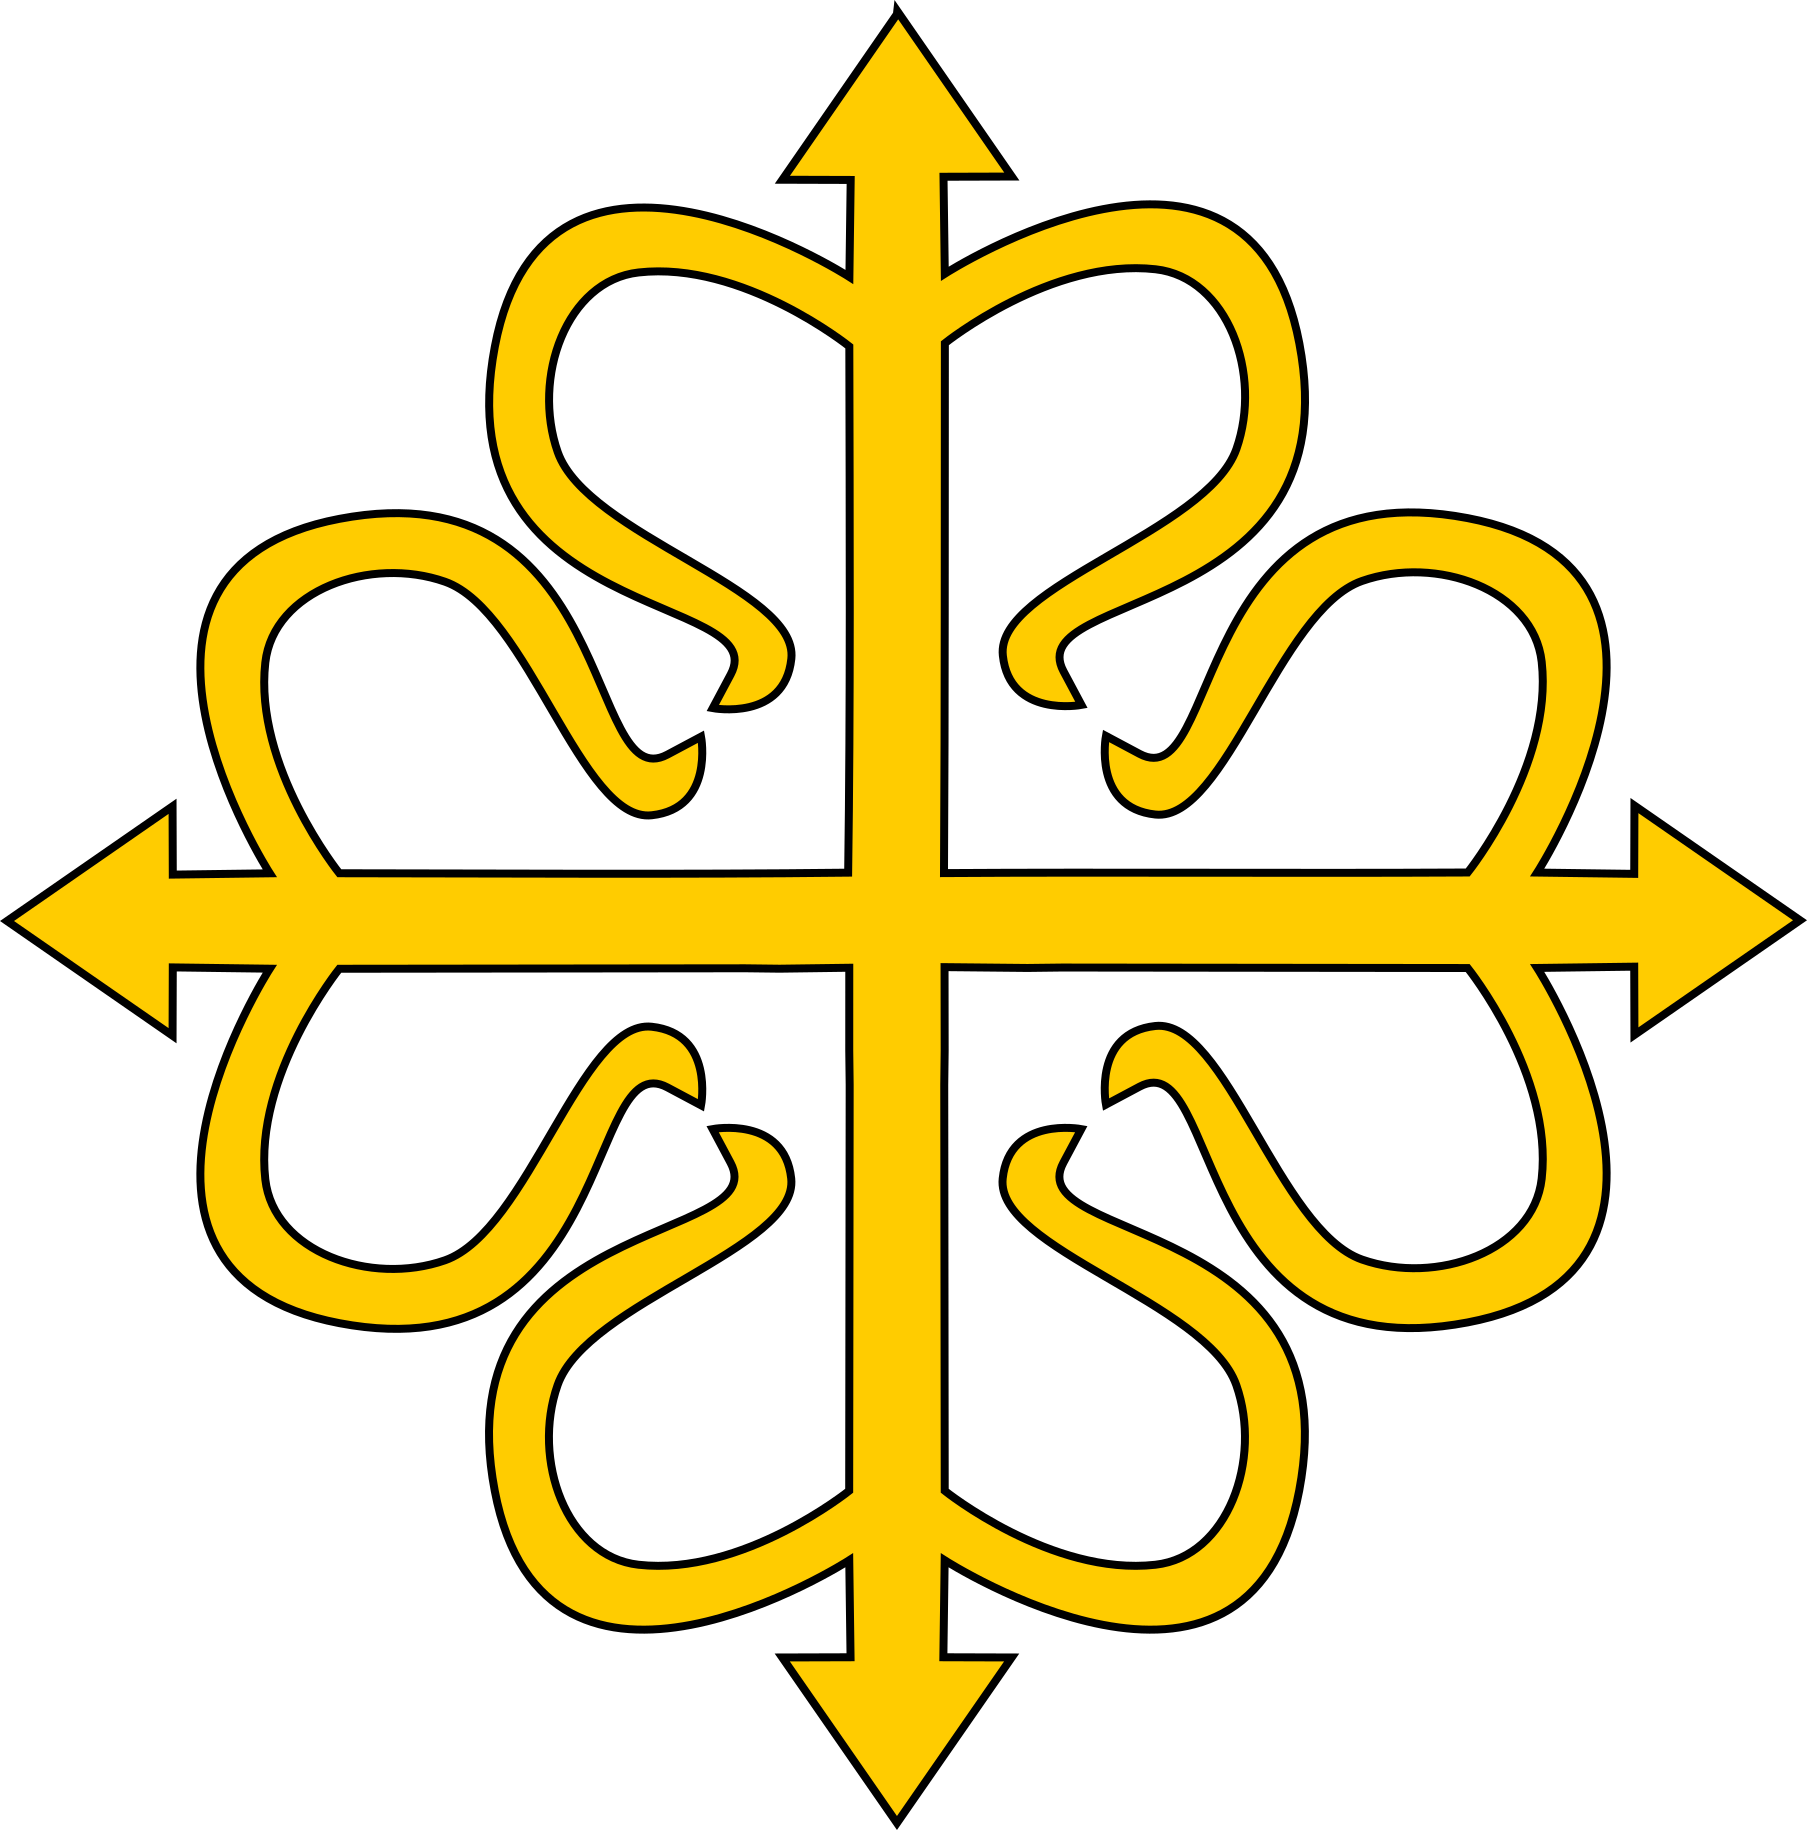 Cross of Calatrava